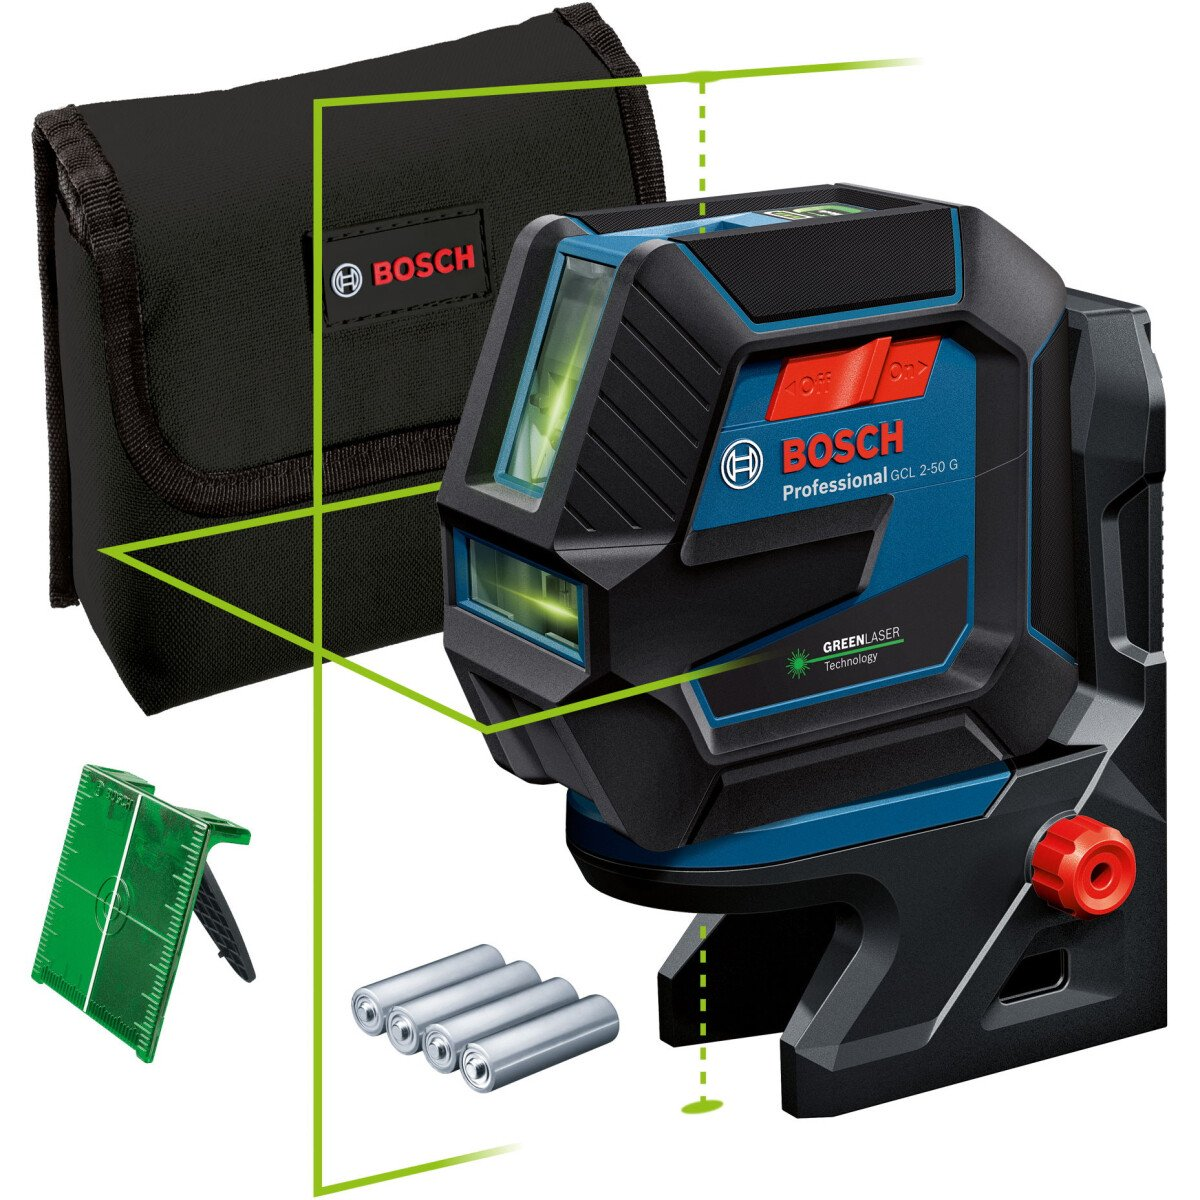 Bosch GCL 2-50 G + RM 10 Green Beam Combi Laser 50m with Target plate and Pouch